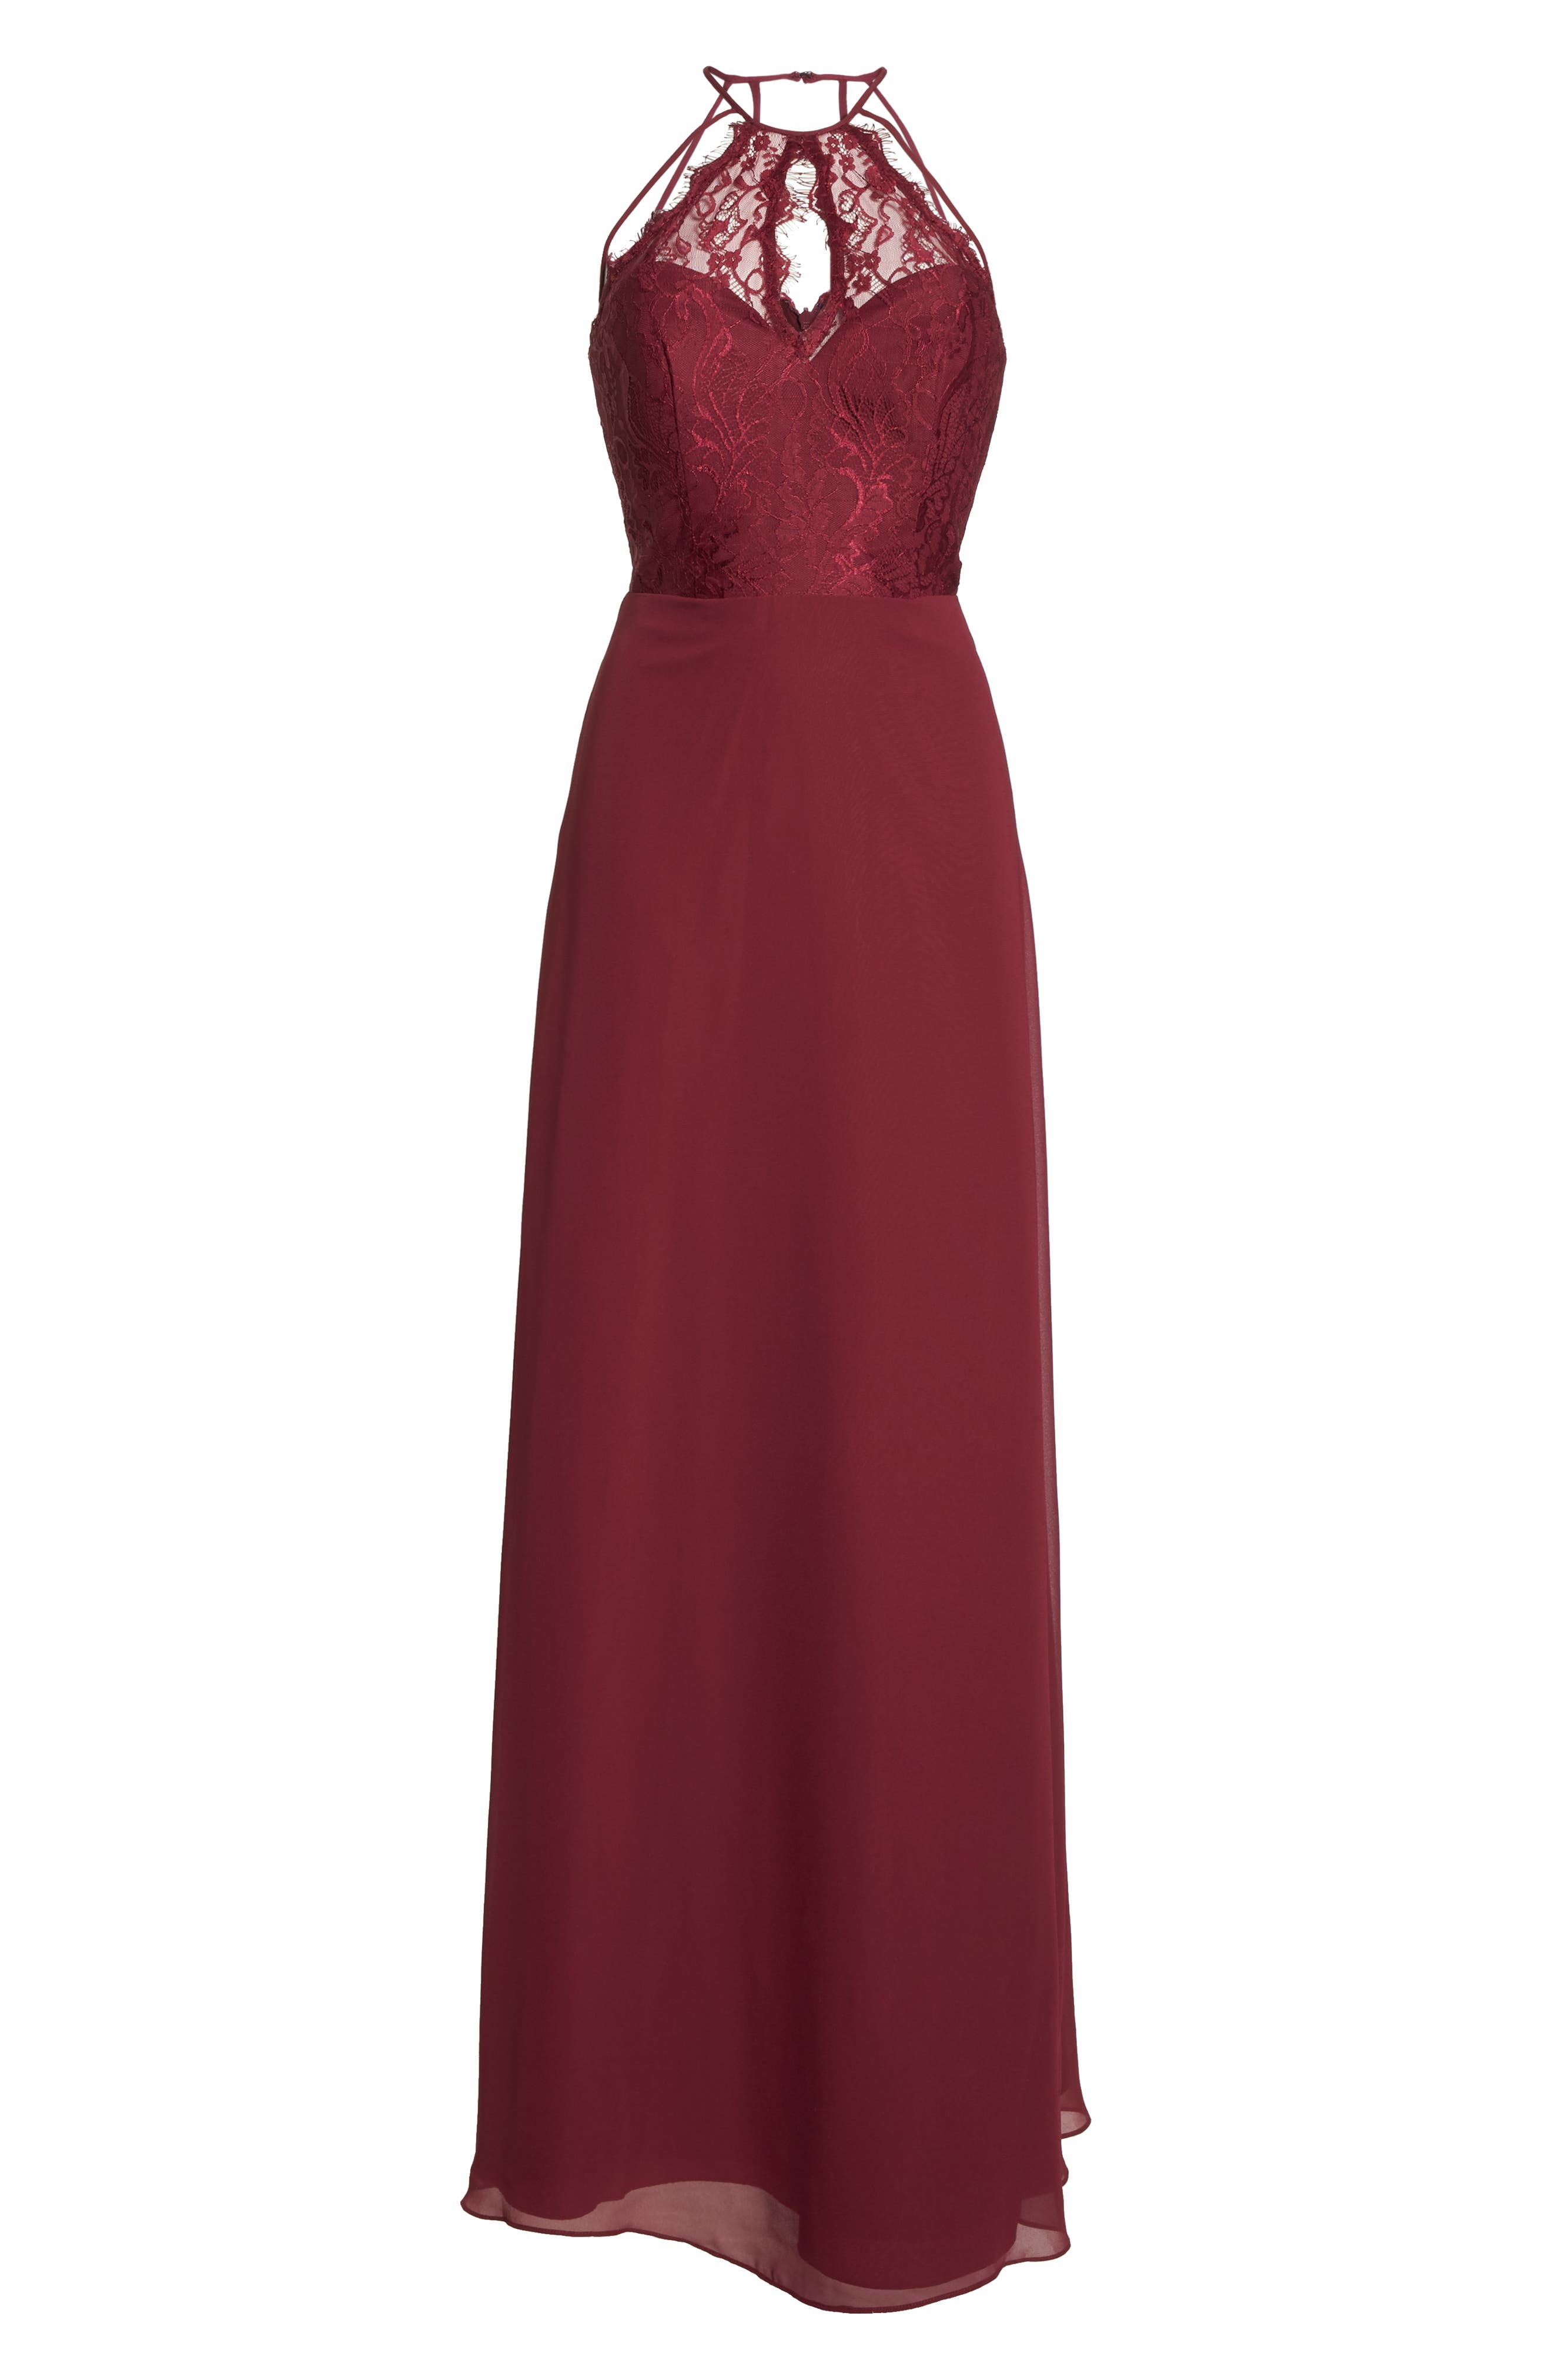 HAYLEY PAIGE OCCASIONS, Lace & Chiffon Halter Gown, Alternate thumbnail 7, color, BURGUNDY